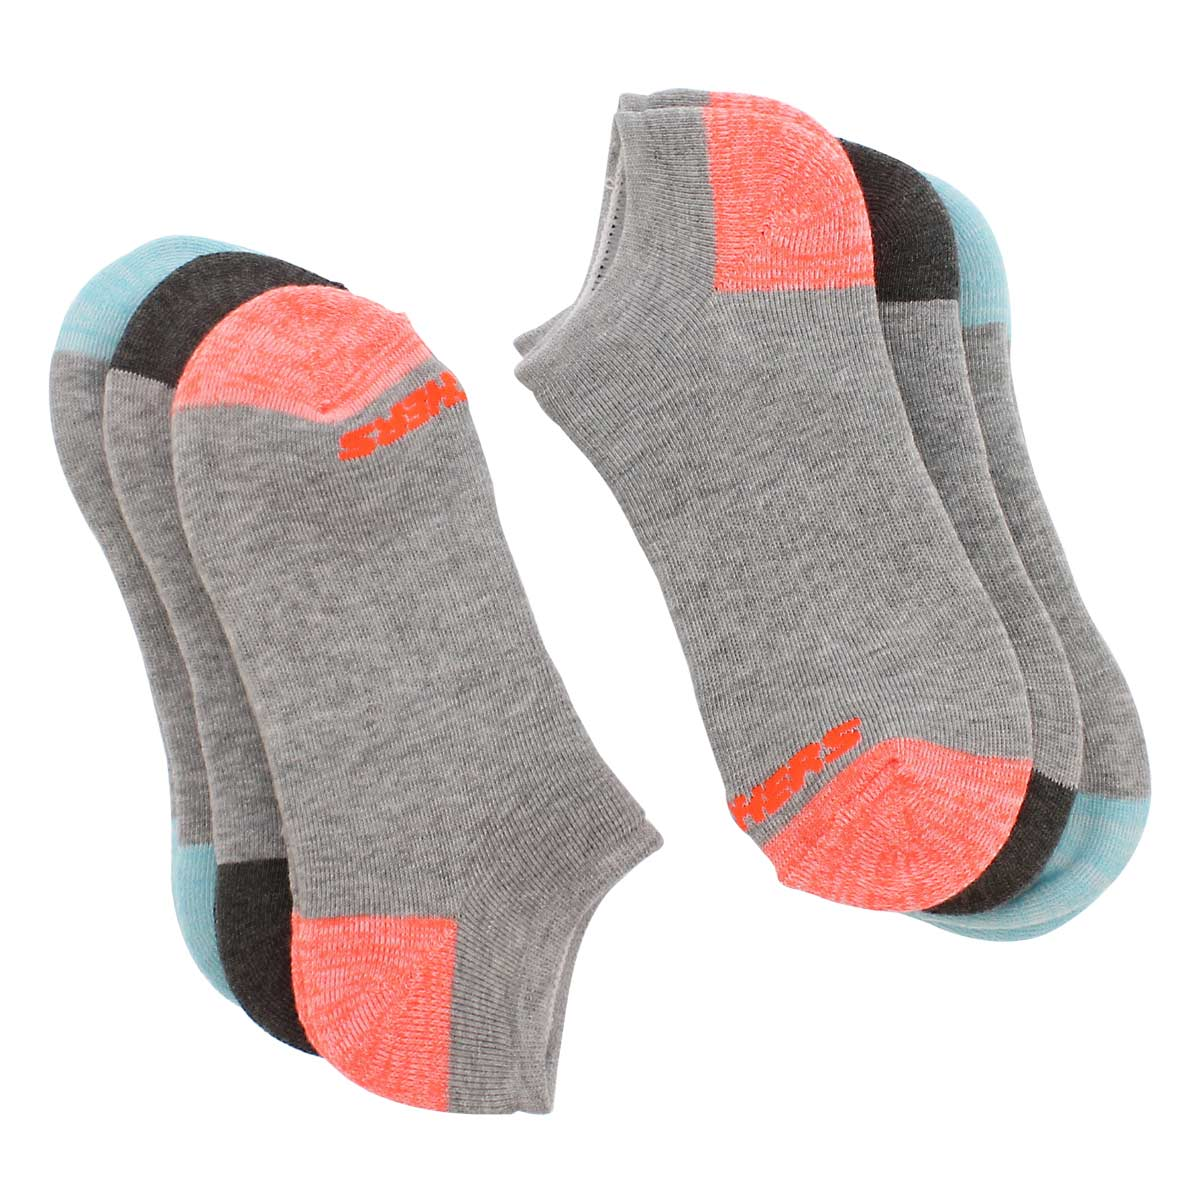 Women's NO SHOW FULL TERRY grey multi socks - 6 pk